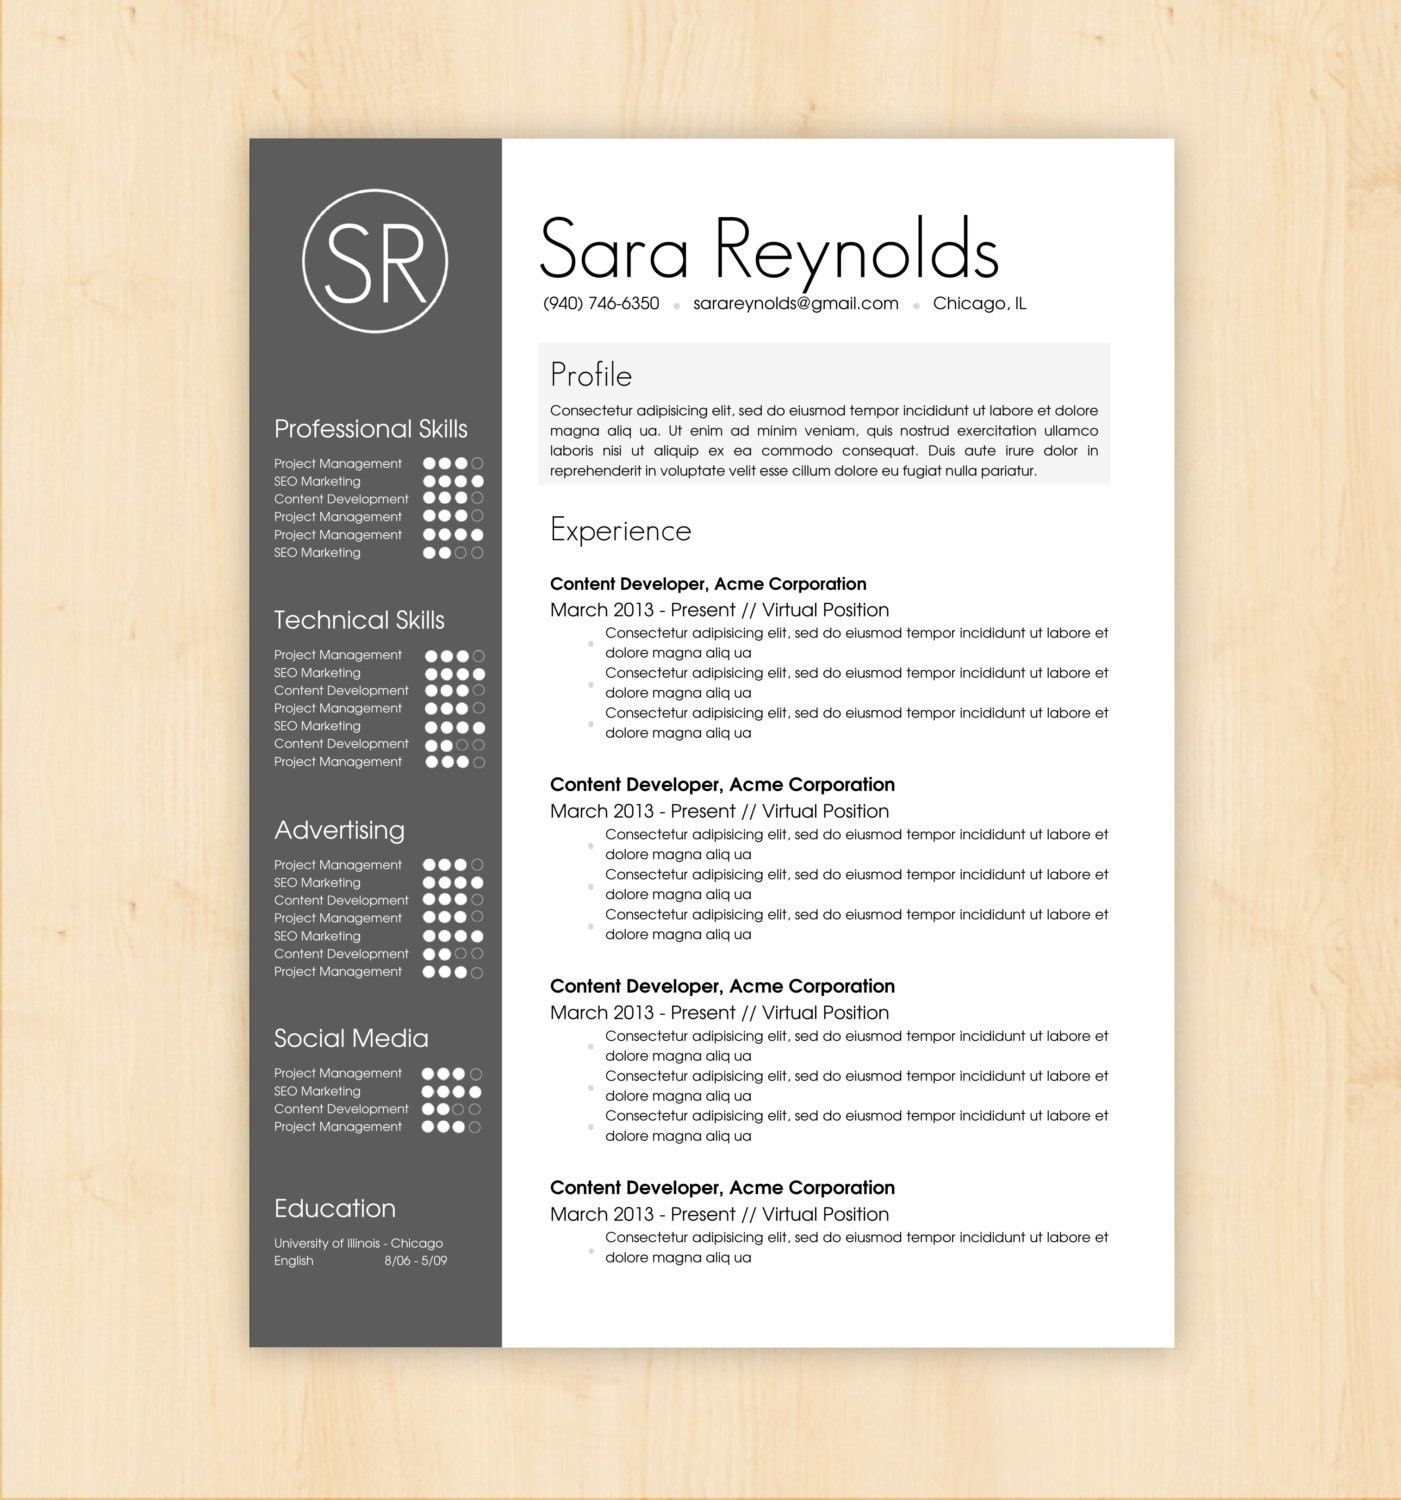 resume template word doc smashcurve write docs streammco for eps zp resume template make a survey - Free Resume Templates Downloads Word